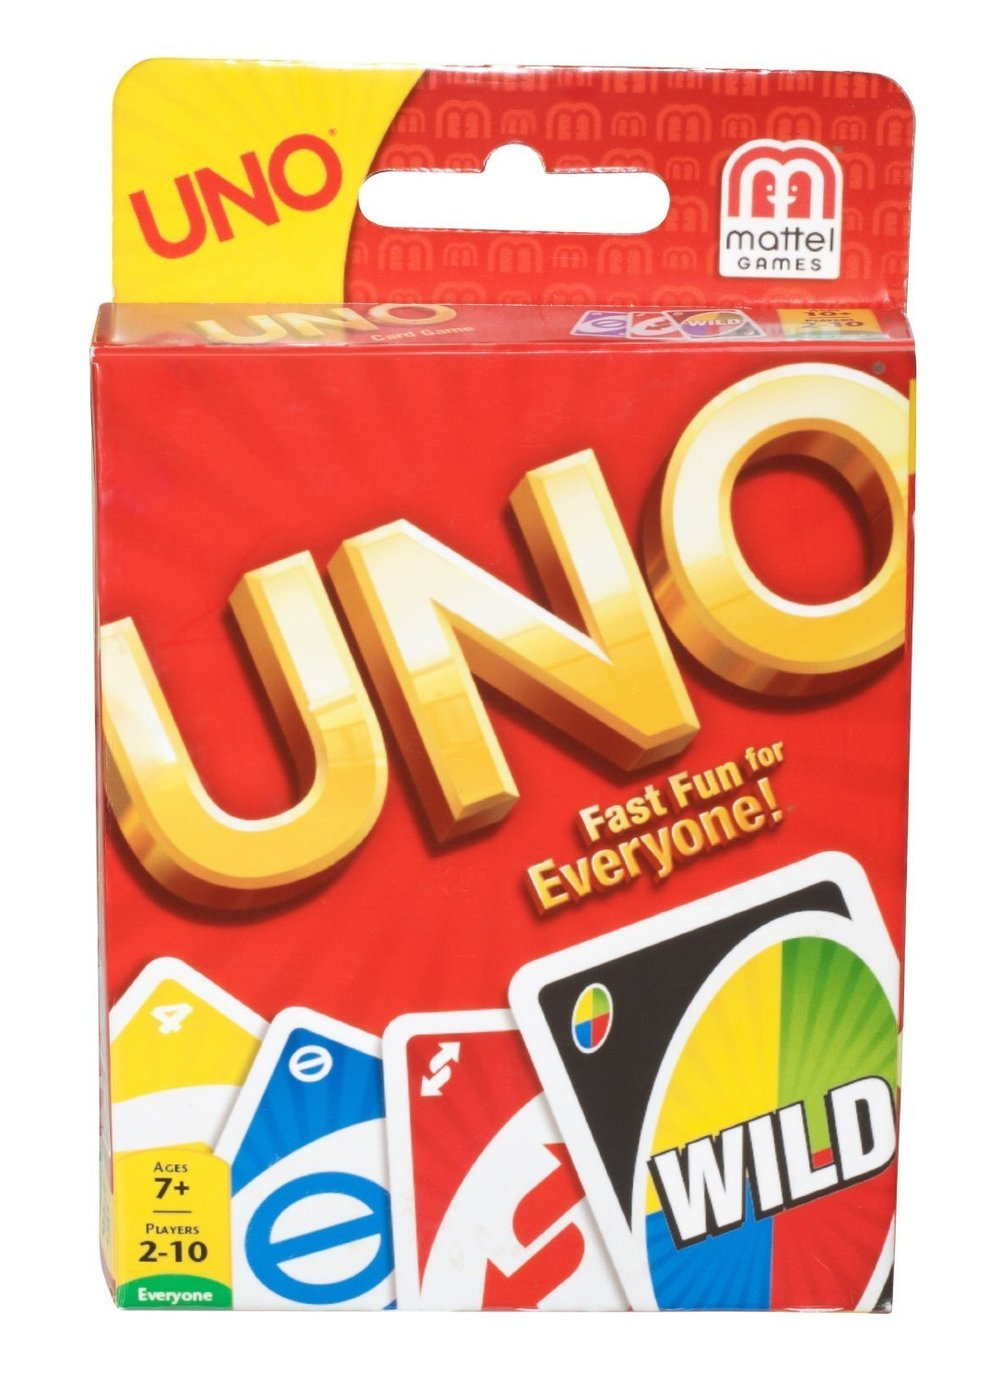 Uno - Another classic but a lot cheaper, it allows up to 10 players to so that's Christmas sorted with all the family. £7.65 on Amazon.